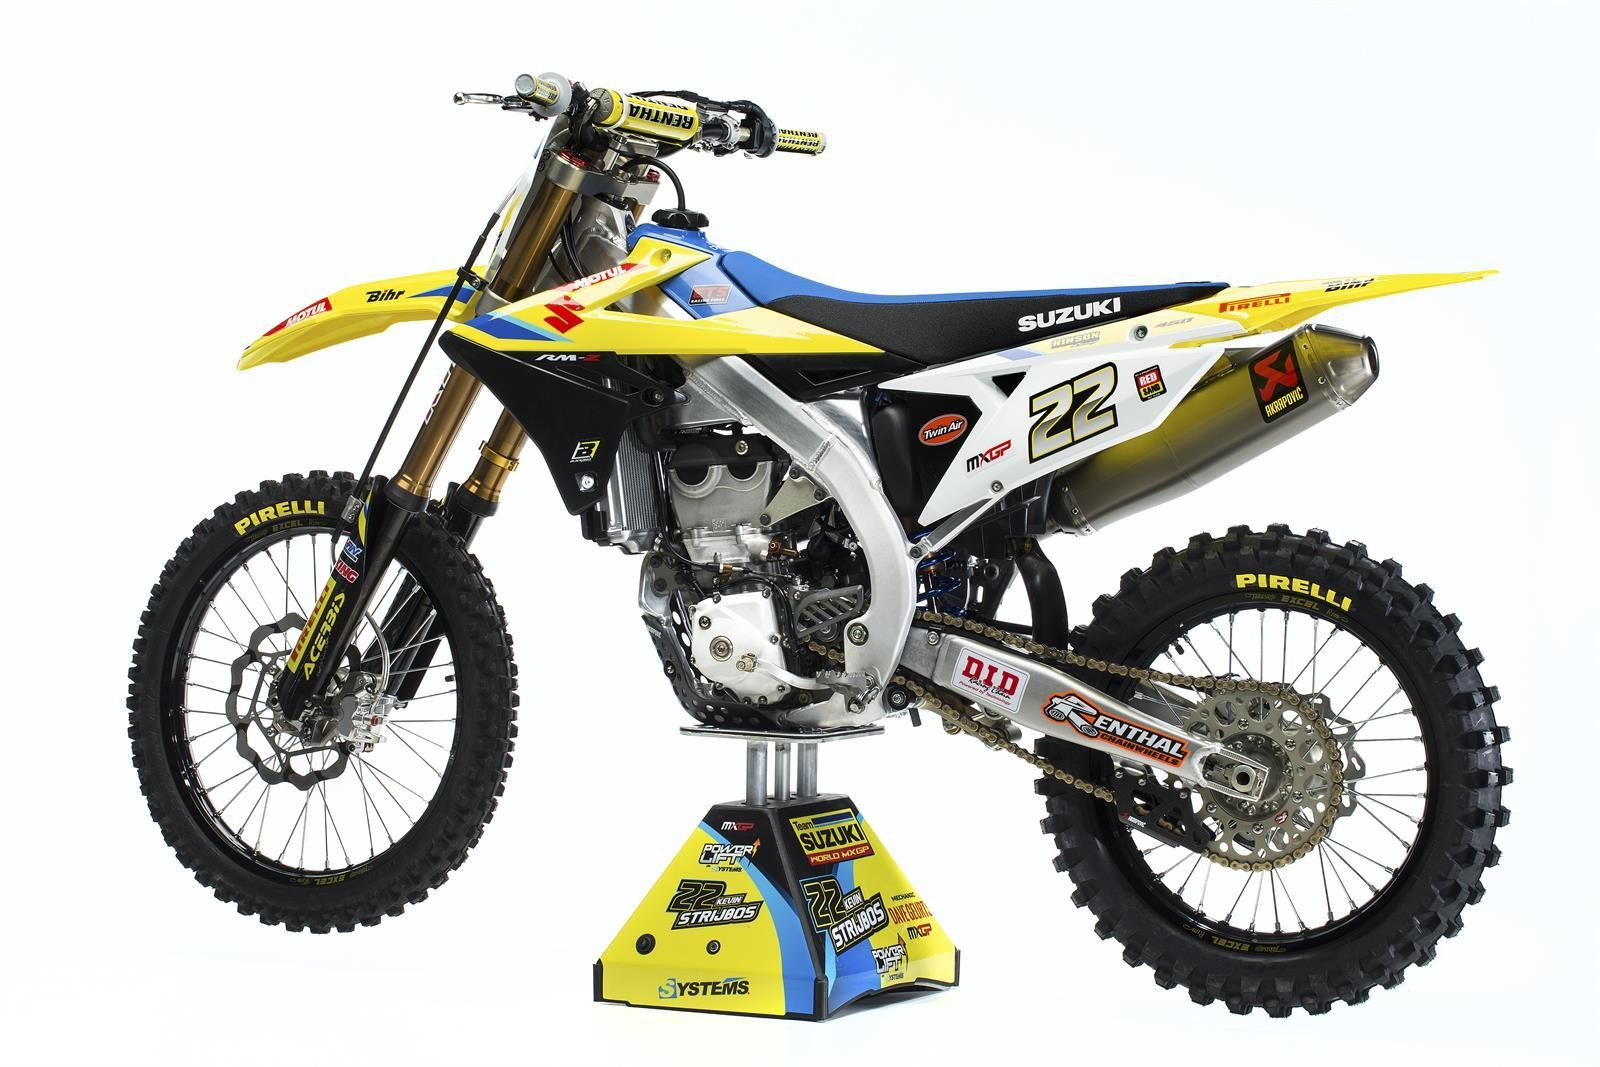 Kevin Strijbos 2018 Suzuki World MXGP RM-Z450WS - First Look: 2017 Suzuki World MXGP Team - Motocross Pictures - Vital MX